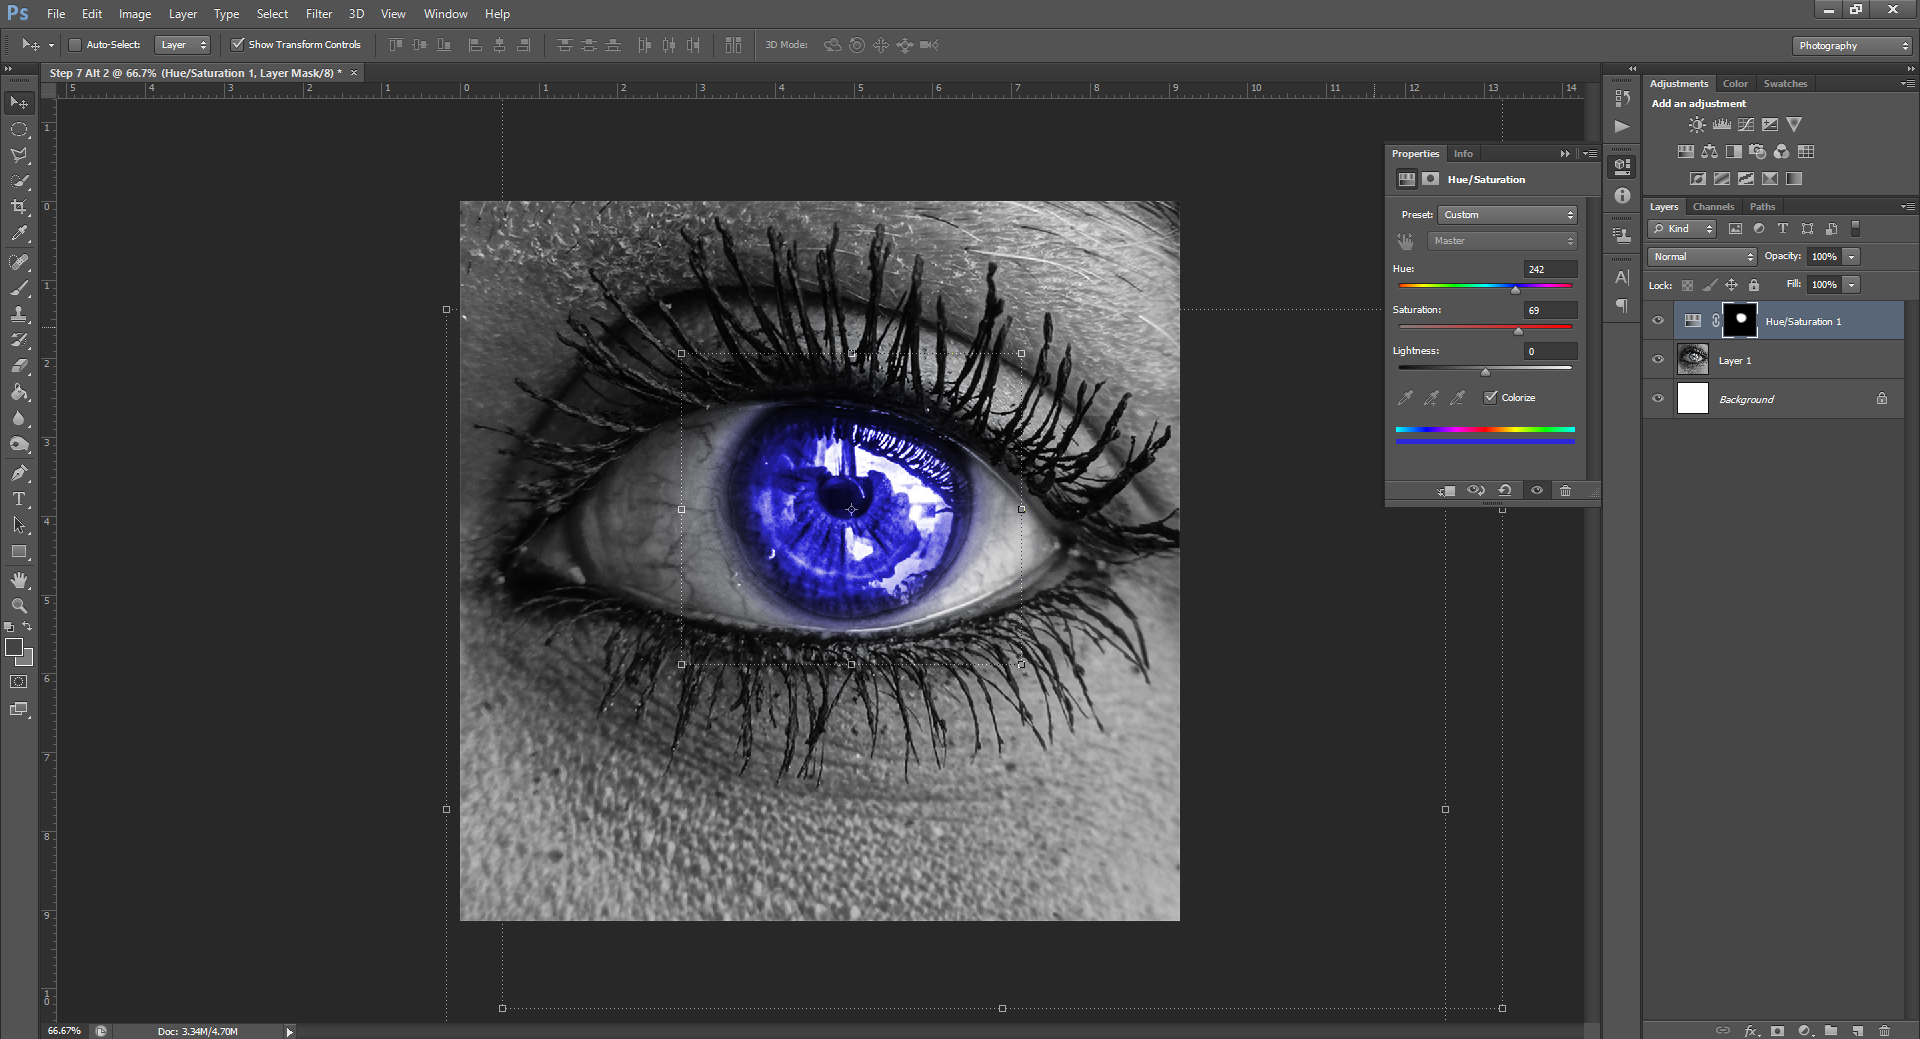 AterImber.com - Writing Tips - Photoshop Tutorial Series - PHSH Effect 15 Changing Eye/Skin Colour - Step 7 Alt 2 - phsh, phsh effect, phsh tutorial, tutorial, photoshop tutorial, indie author help, book covers, writing tips